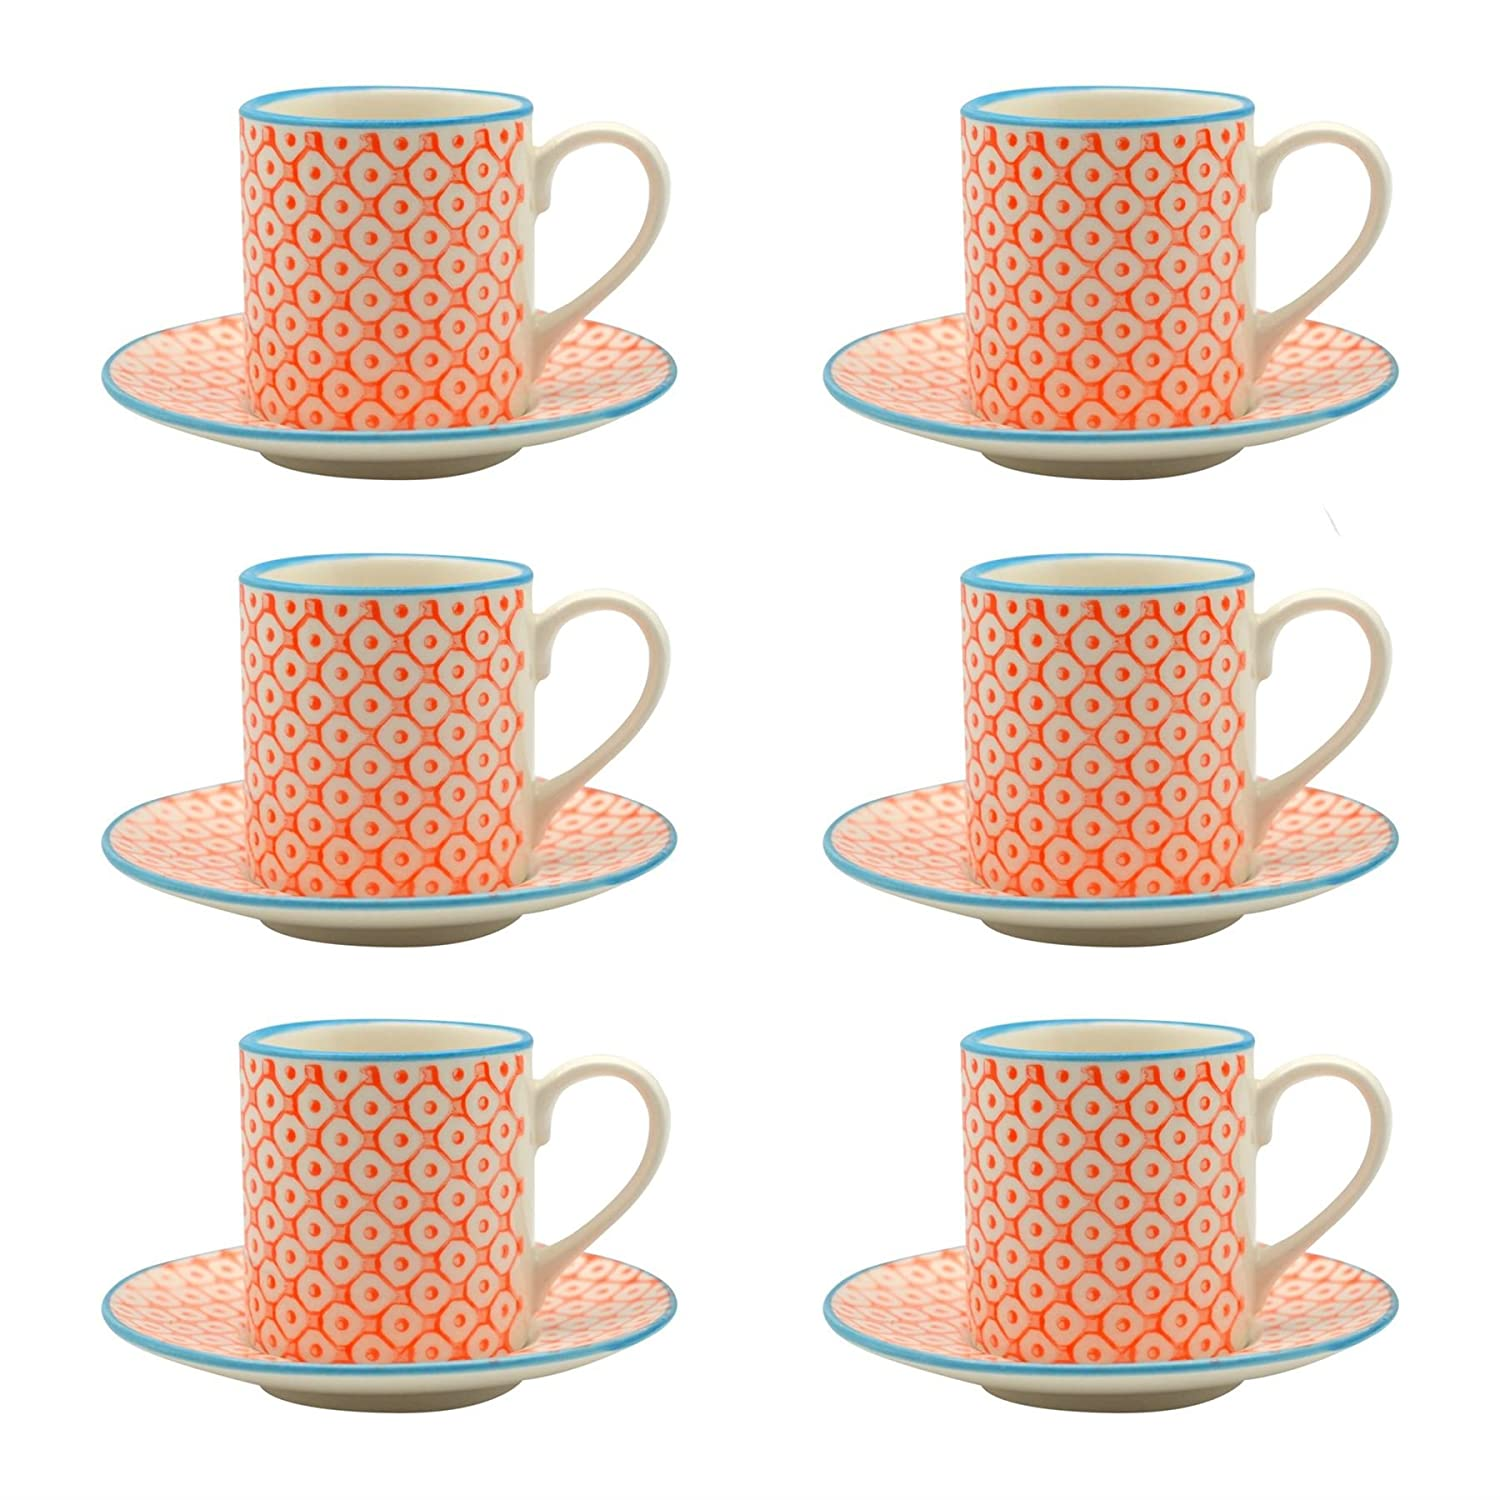 Patterned Espresso Cup and Saucer Set 65ml - Orange / Blue Print - Box of 6 Nicola Spring